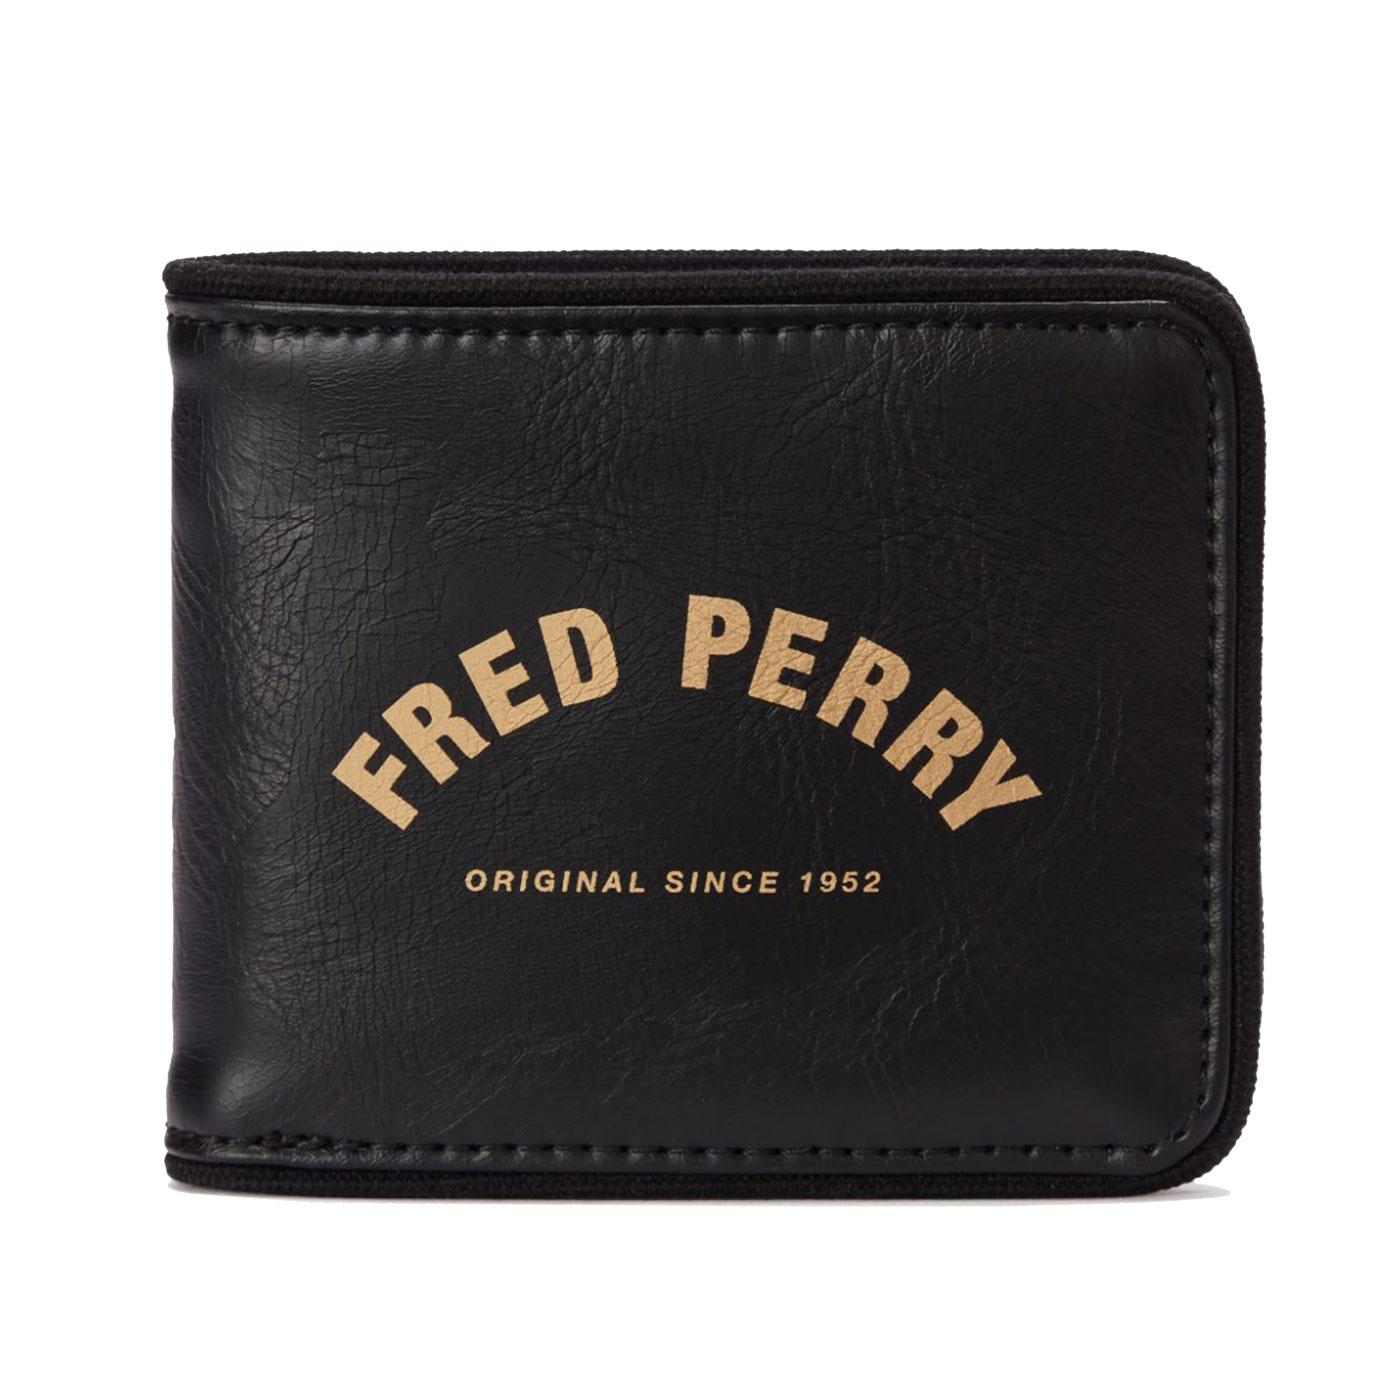 FRED PERRY Arch Logo Branded Billfold Wallet BLACK